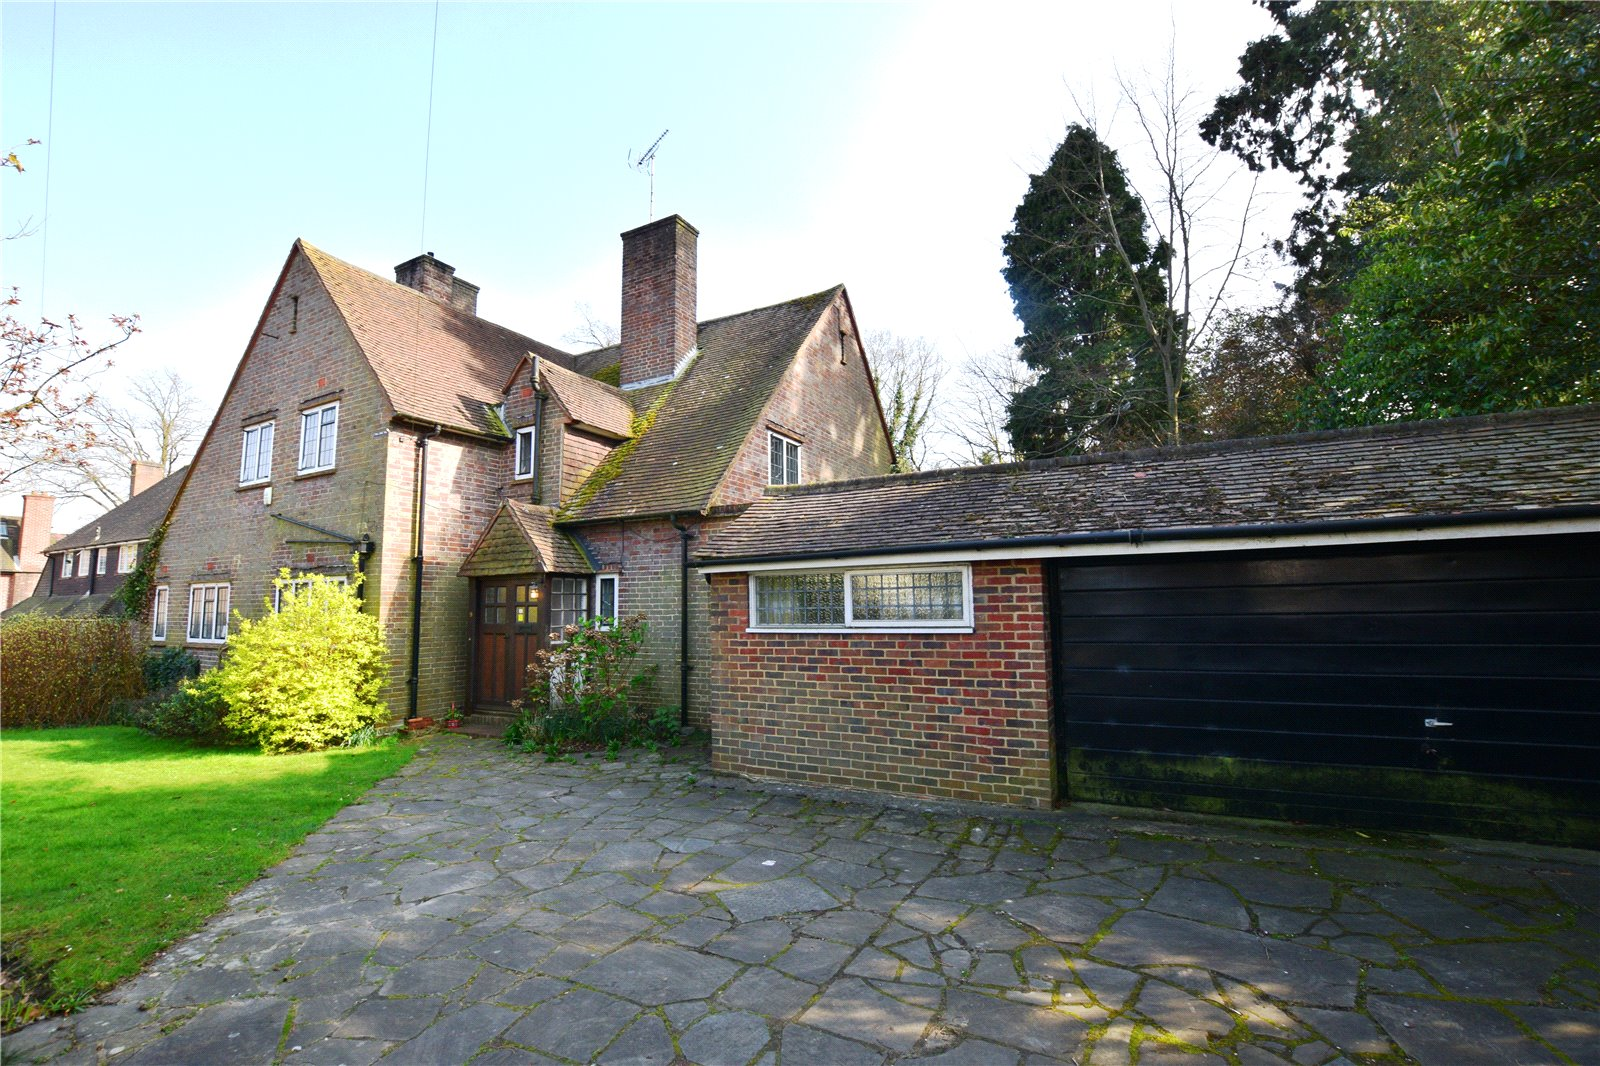 3 Bedrooms Detached House for sale in Southwell Park Road, Camberley, Surrey, GU15